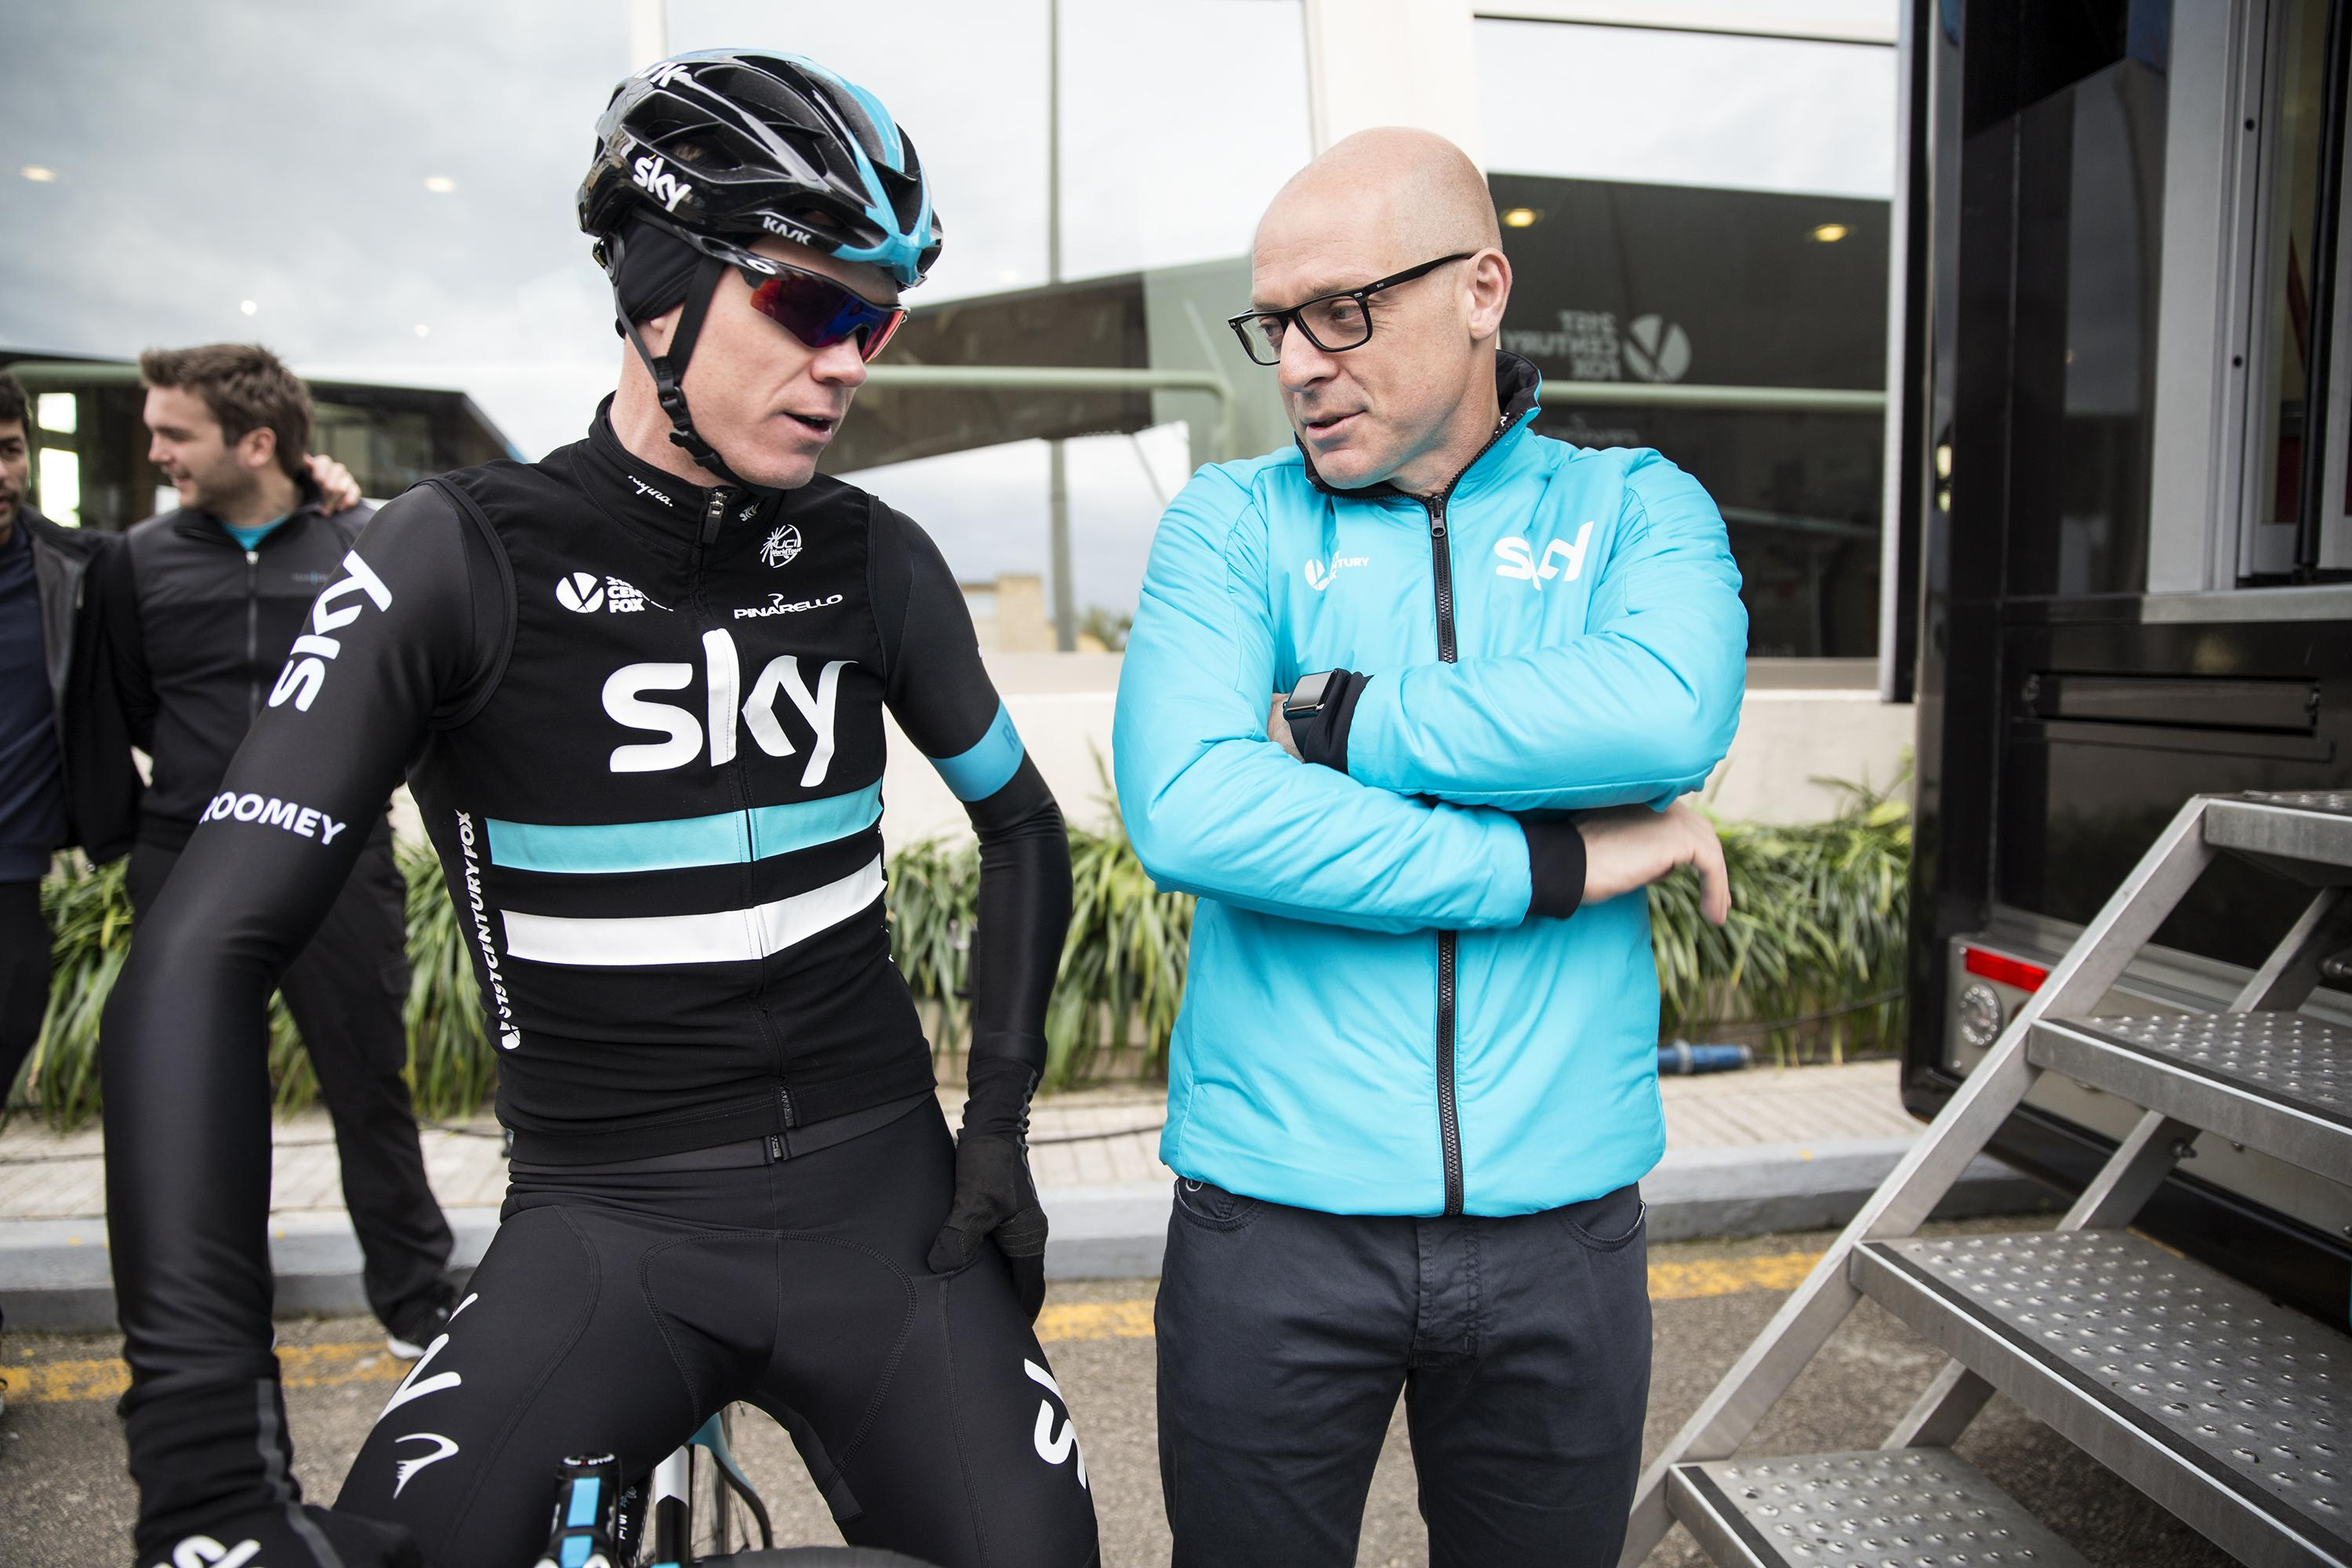 Froome and Sir Dave Brailsford are now free to plan for the start of the Tour de France on Saturday as the Brit goes for his fifth title